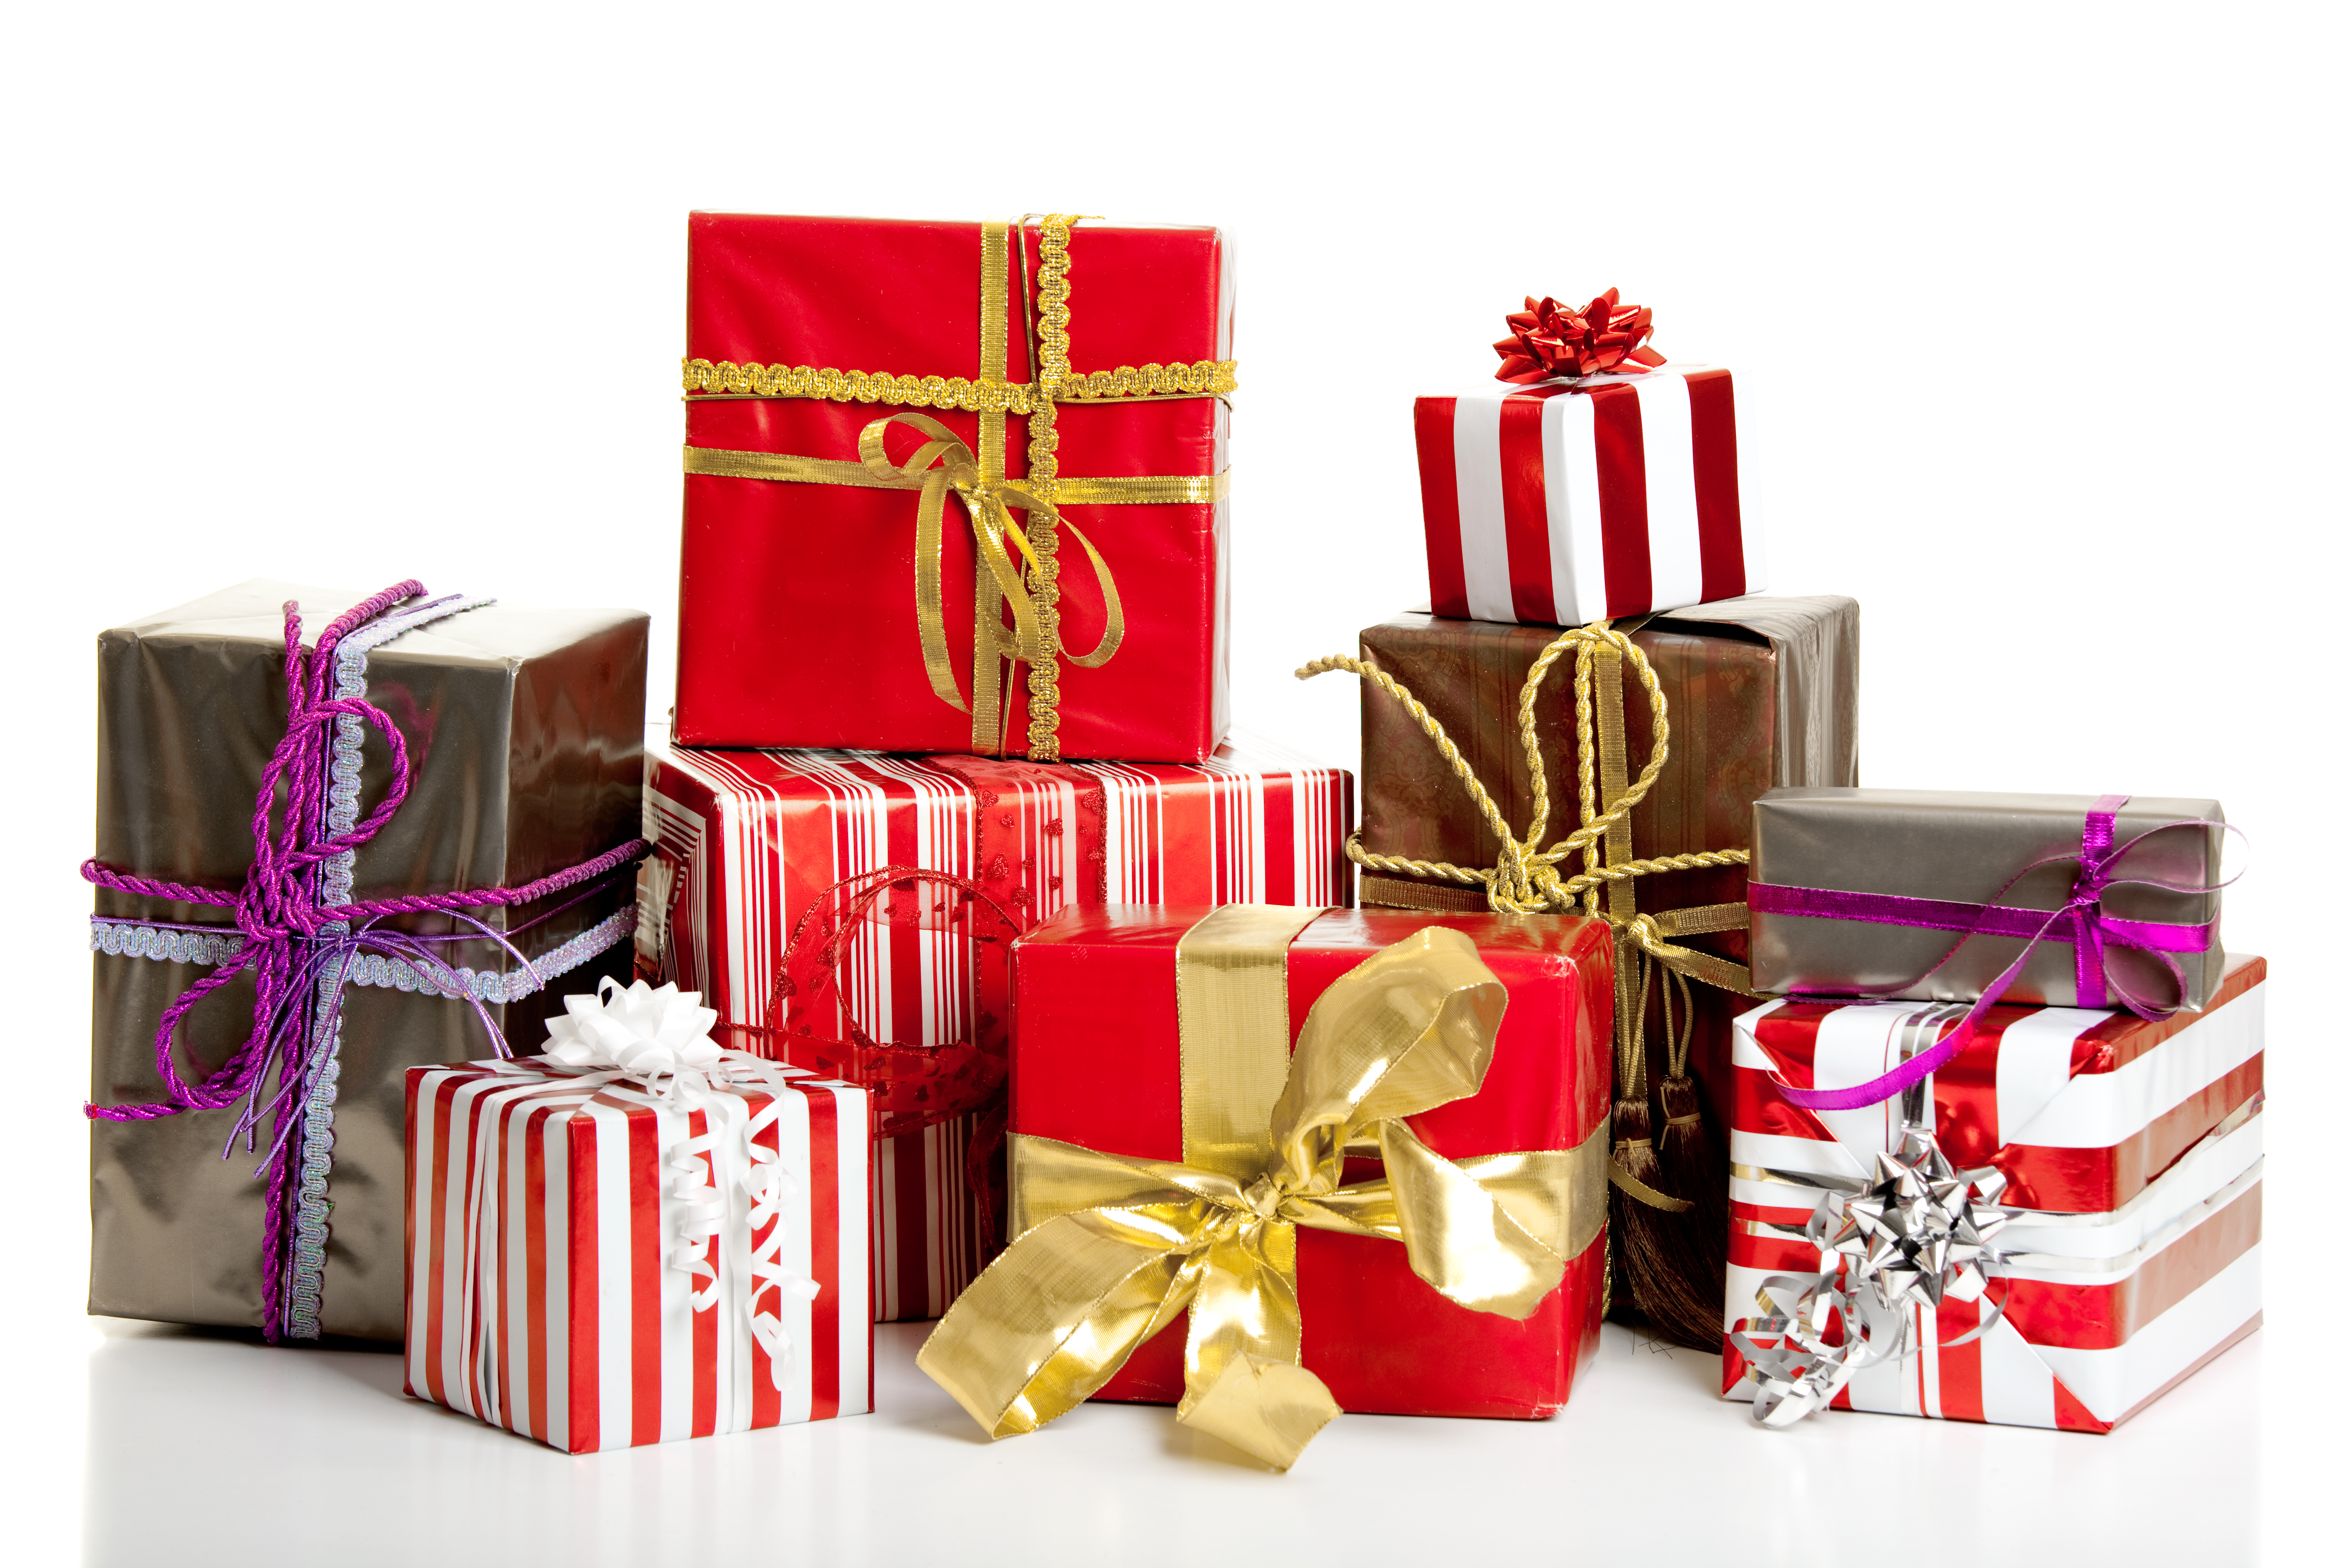 Christmas gifts isolated on a white background